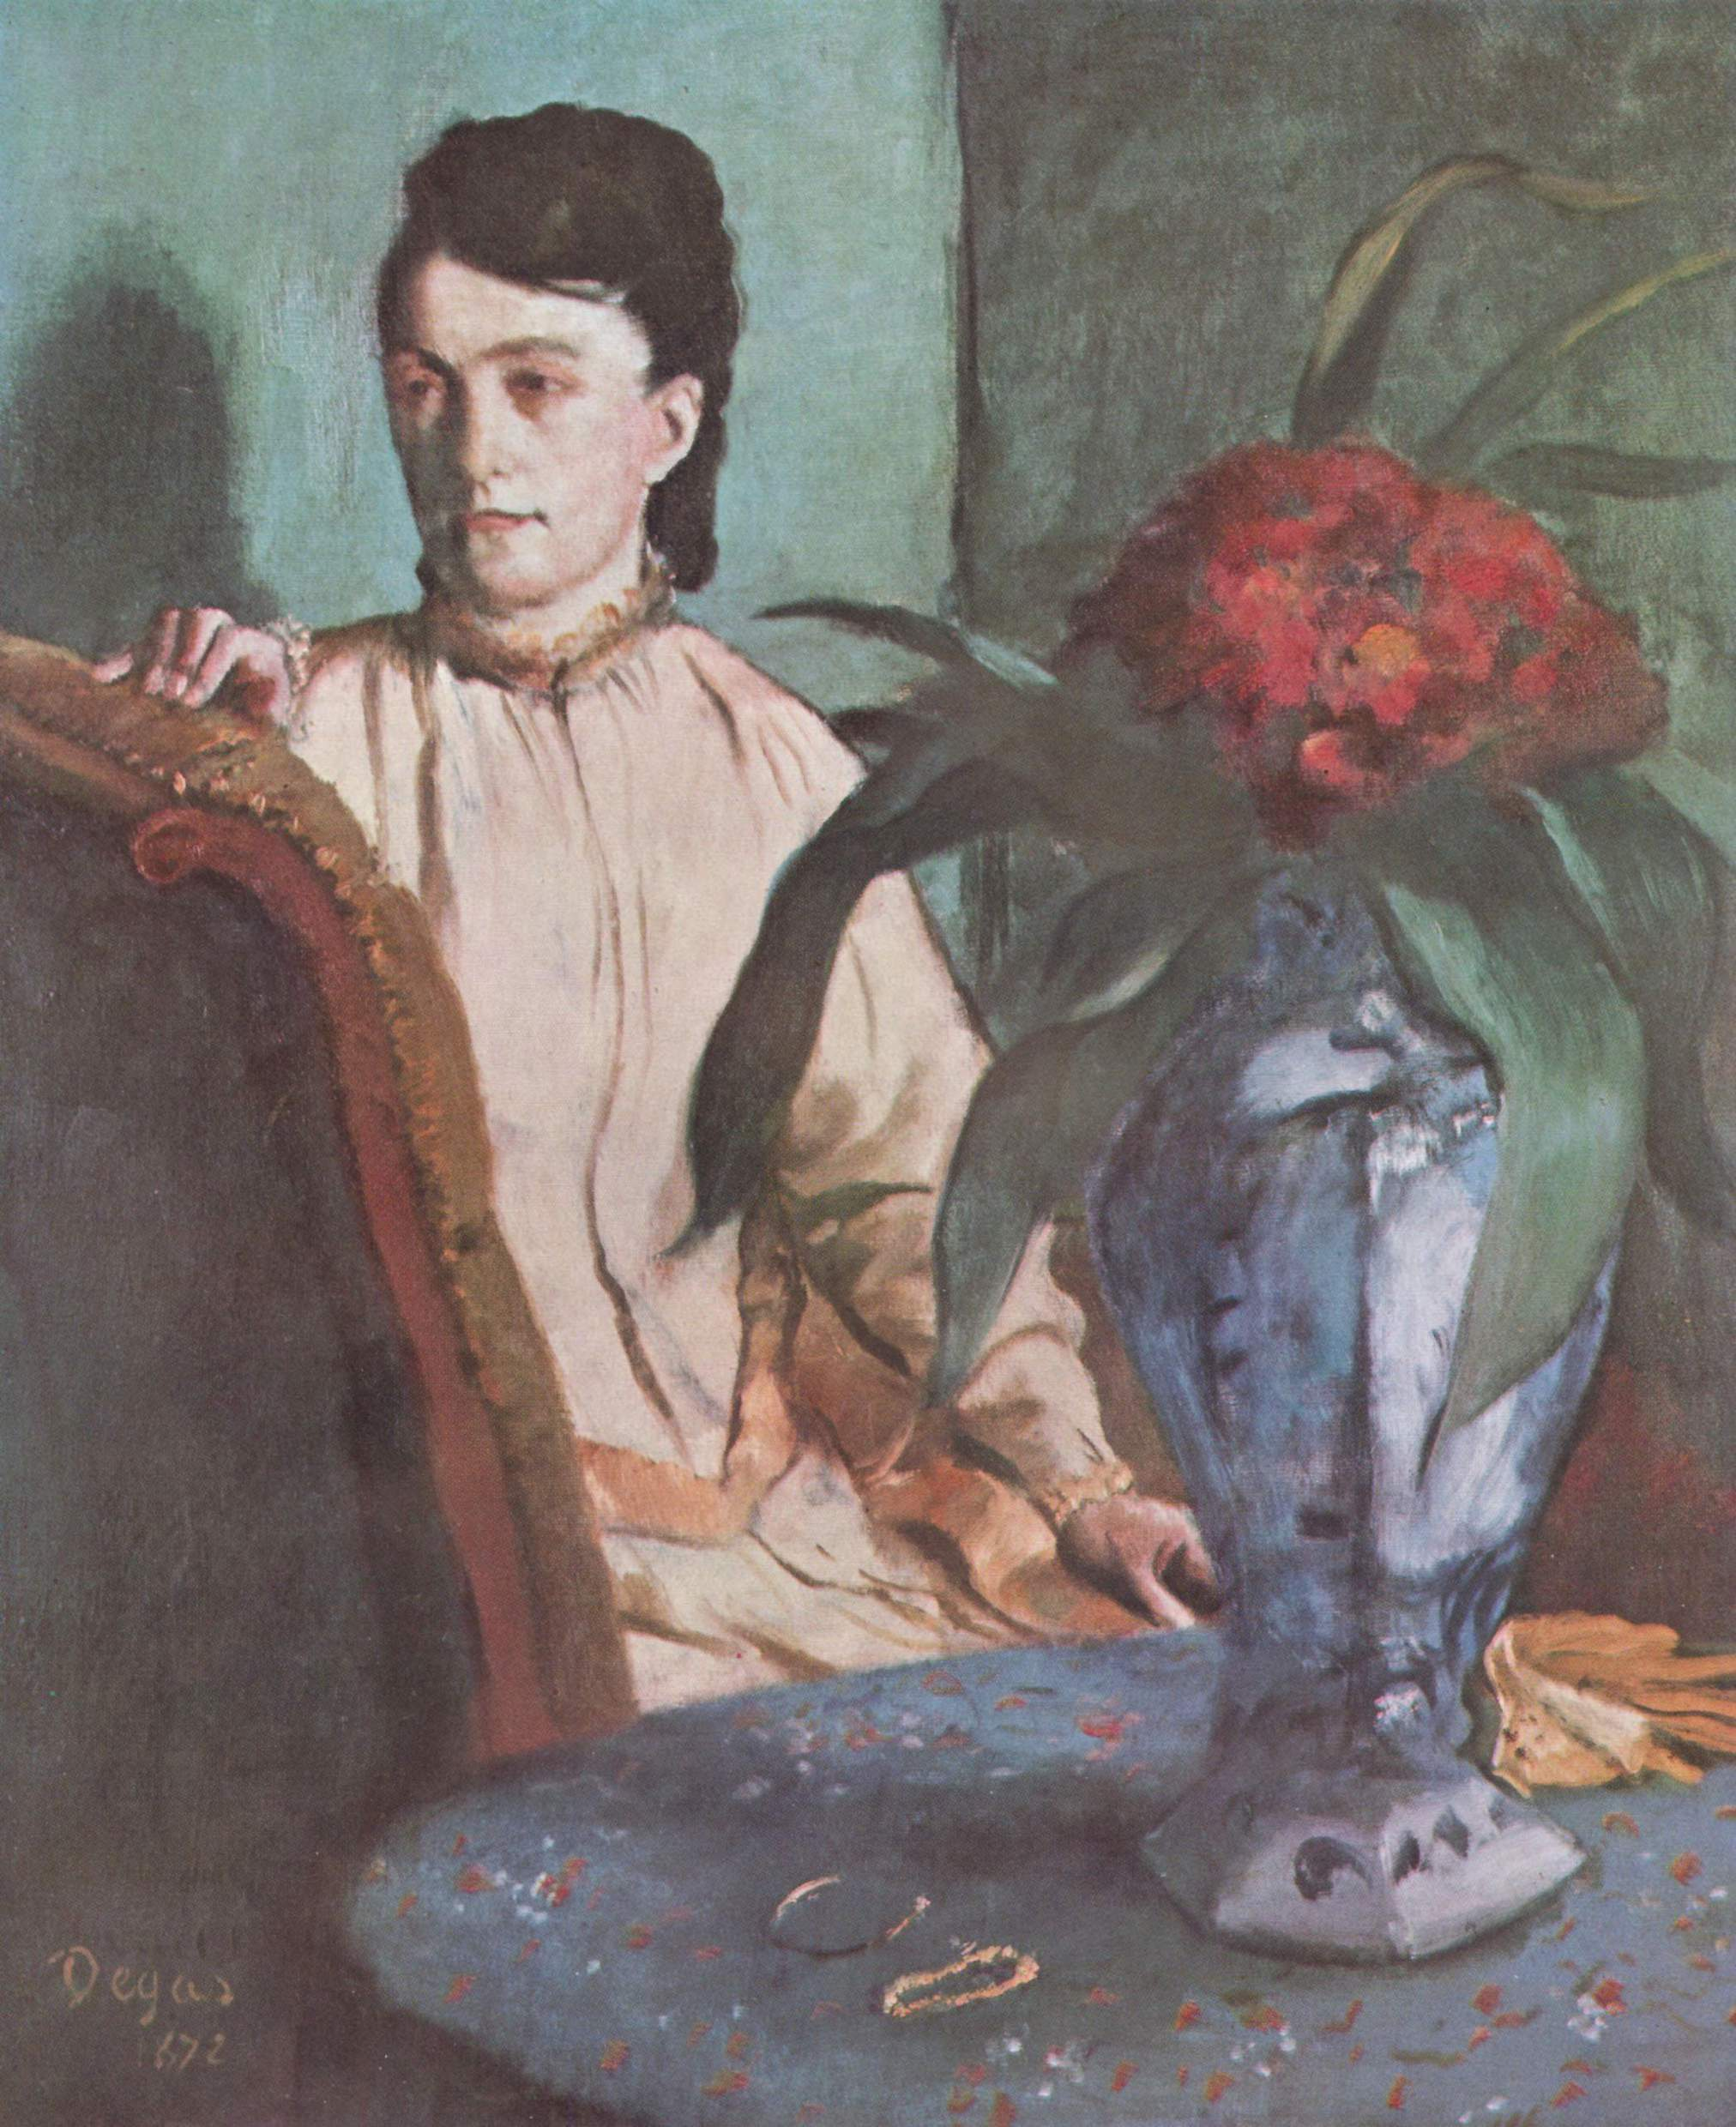 a summary of the life and works of hilaire germaine edgar de gas Edgar degas (french: born hilaire-germain-edgar de gas (19 july 1834 - 27 september 1917) was a french artist famous for his paintings, sculptures, prints, and drawings.